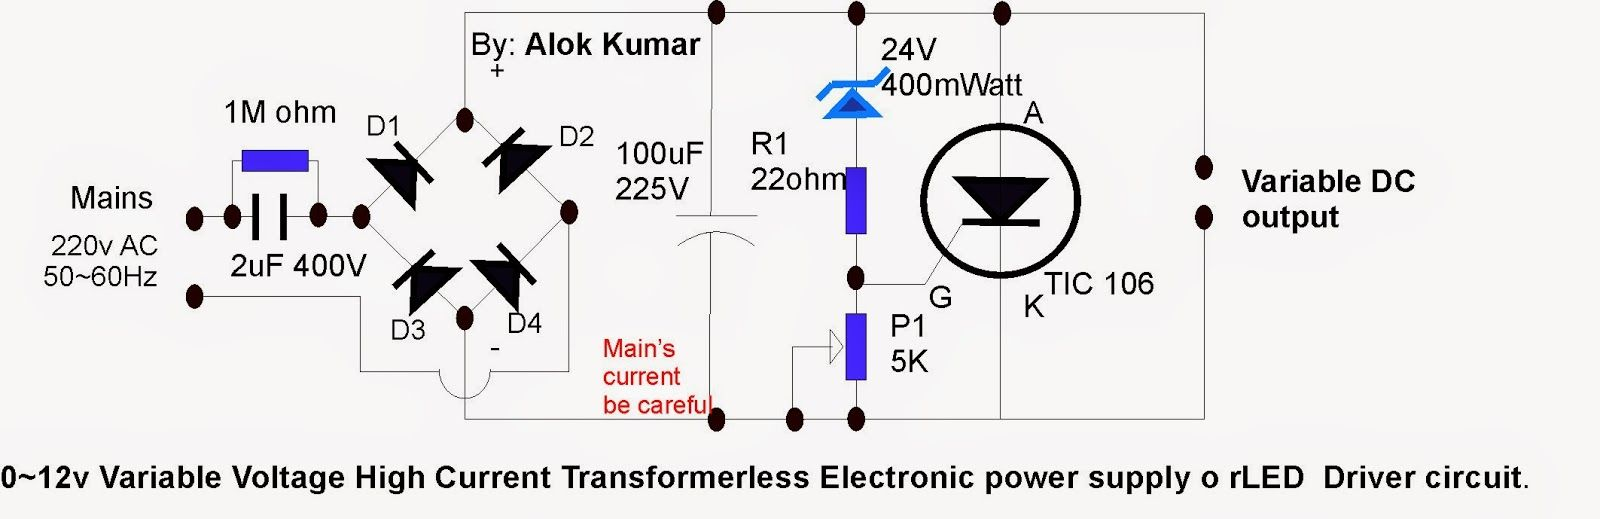 medium resolution of electronic circuits transformerless power supply led drivers battery chargers solar circuits how to make 0 to 12v variable high current transformerless